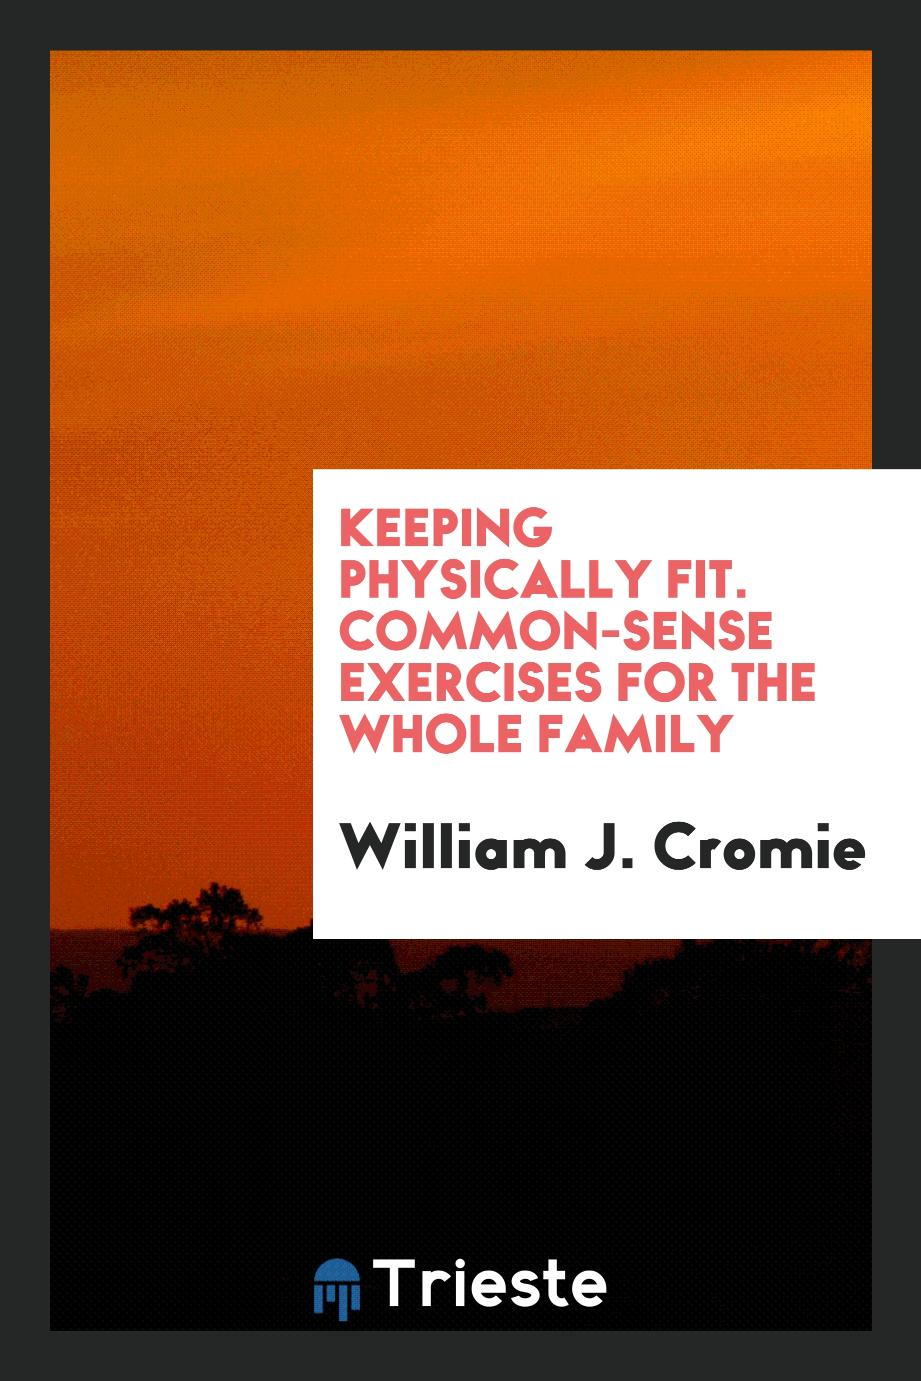 Keeping Physically Fit. Common-Sense Exercises for the Whole Family